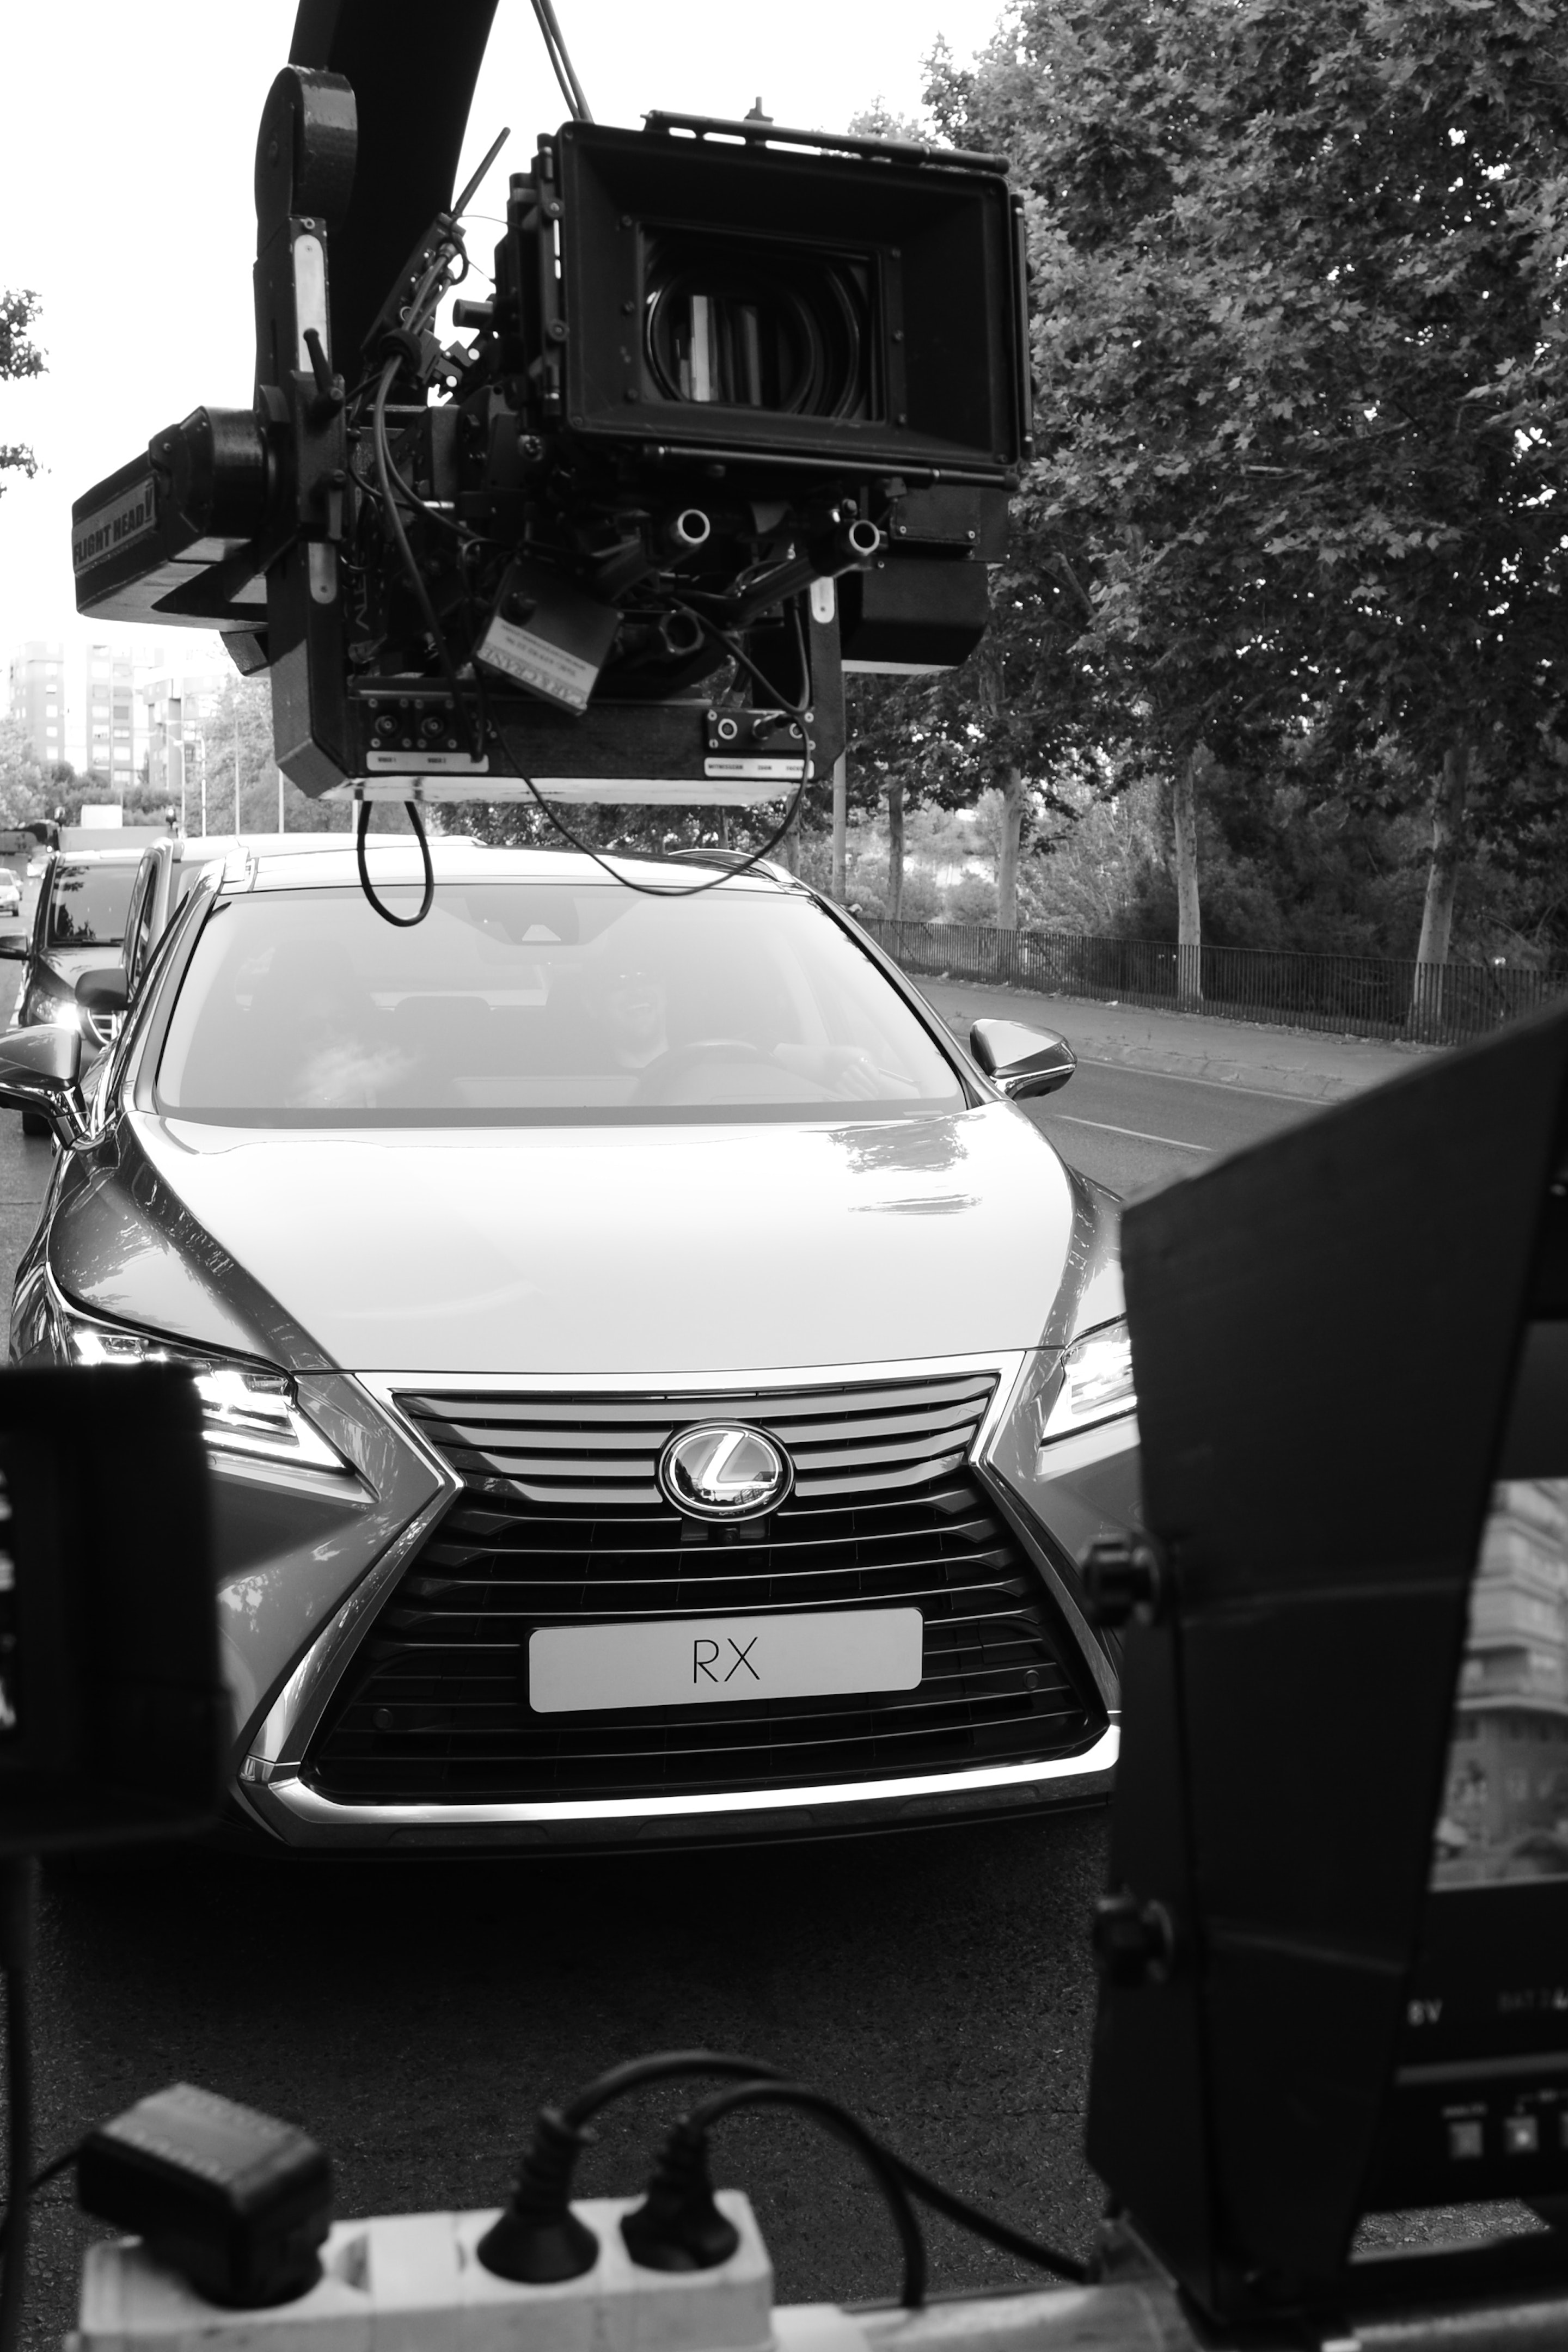 Lexus RX TVC for CHI/AHFC